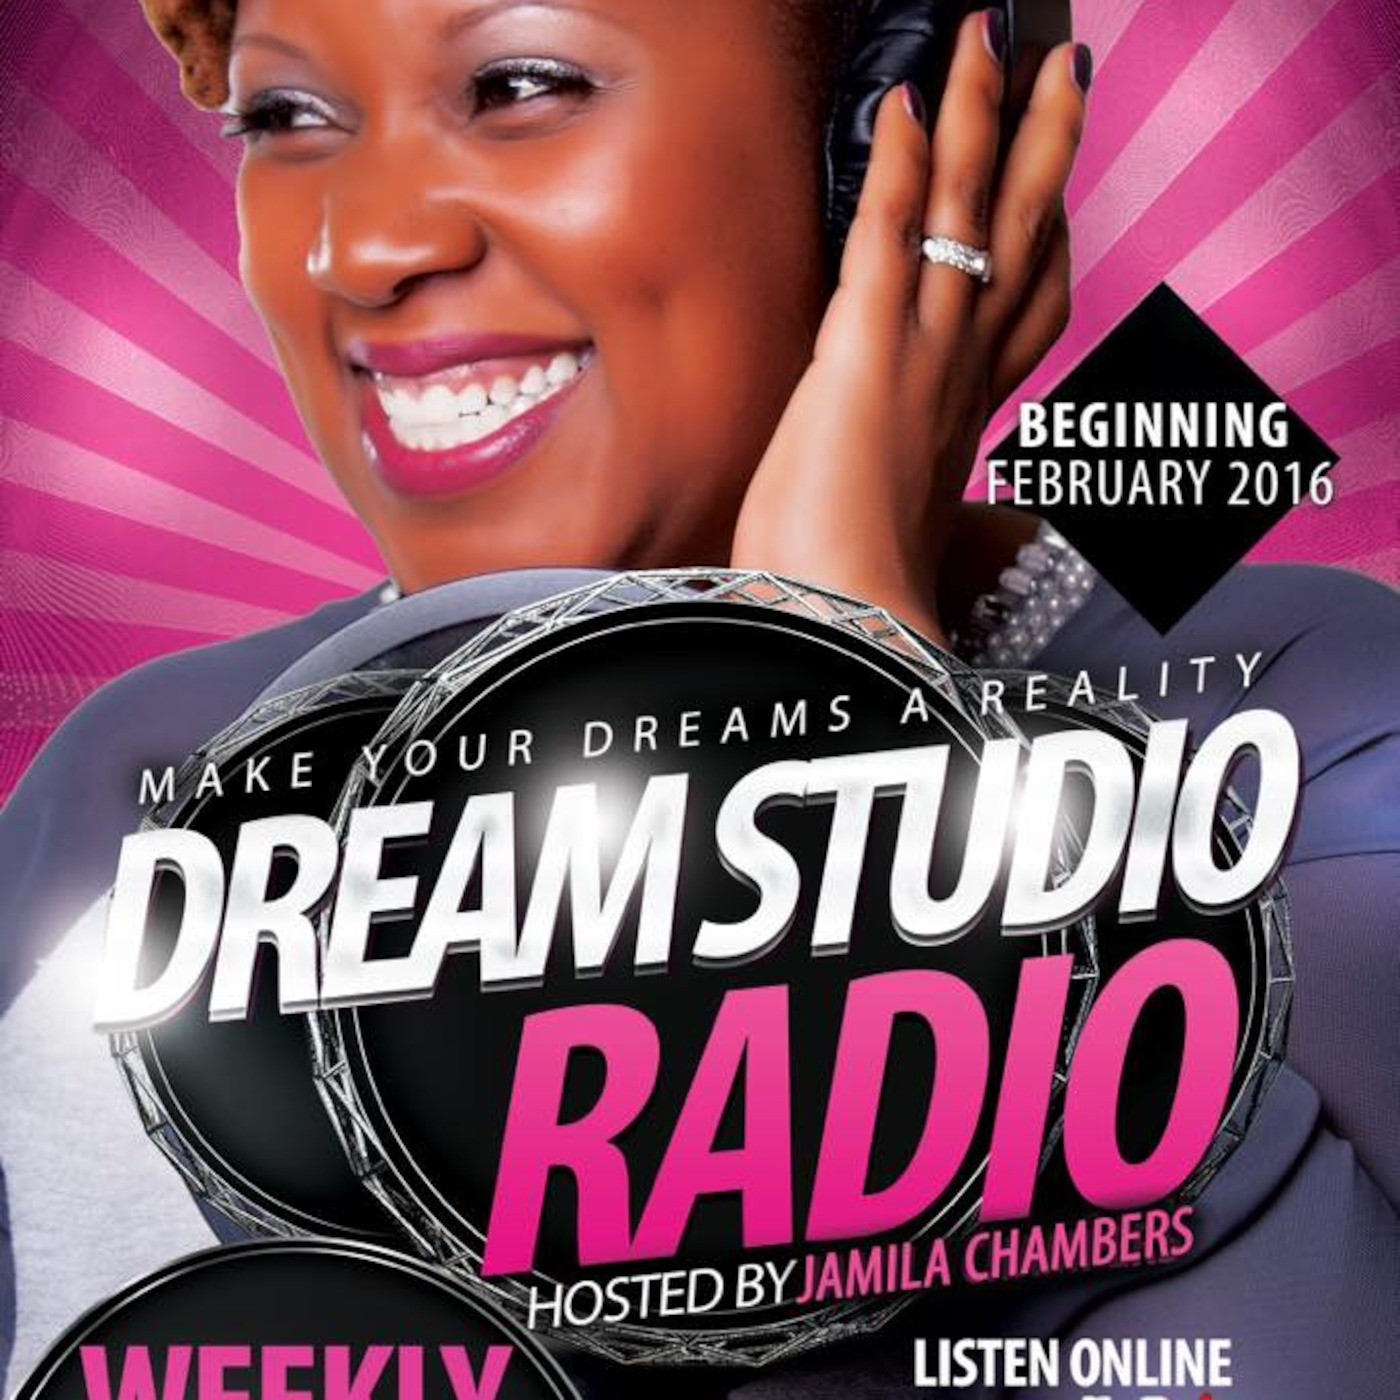 Dream Studio Radio with Jamila Chambers